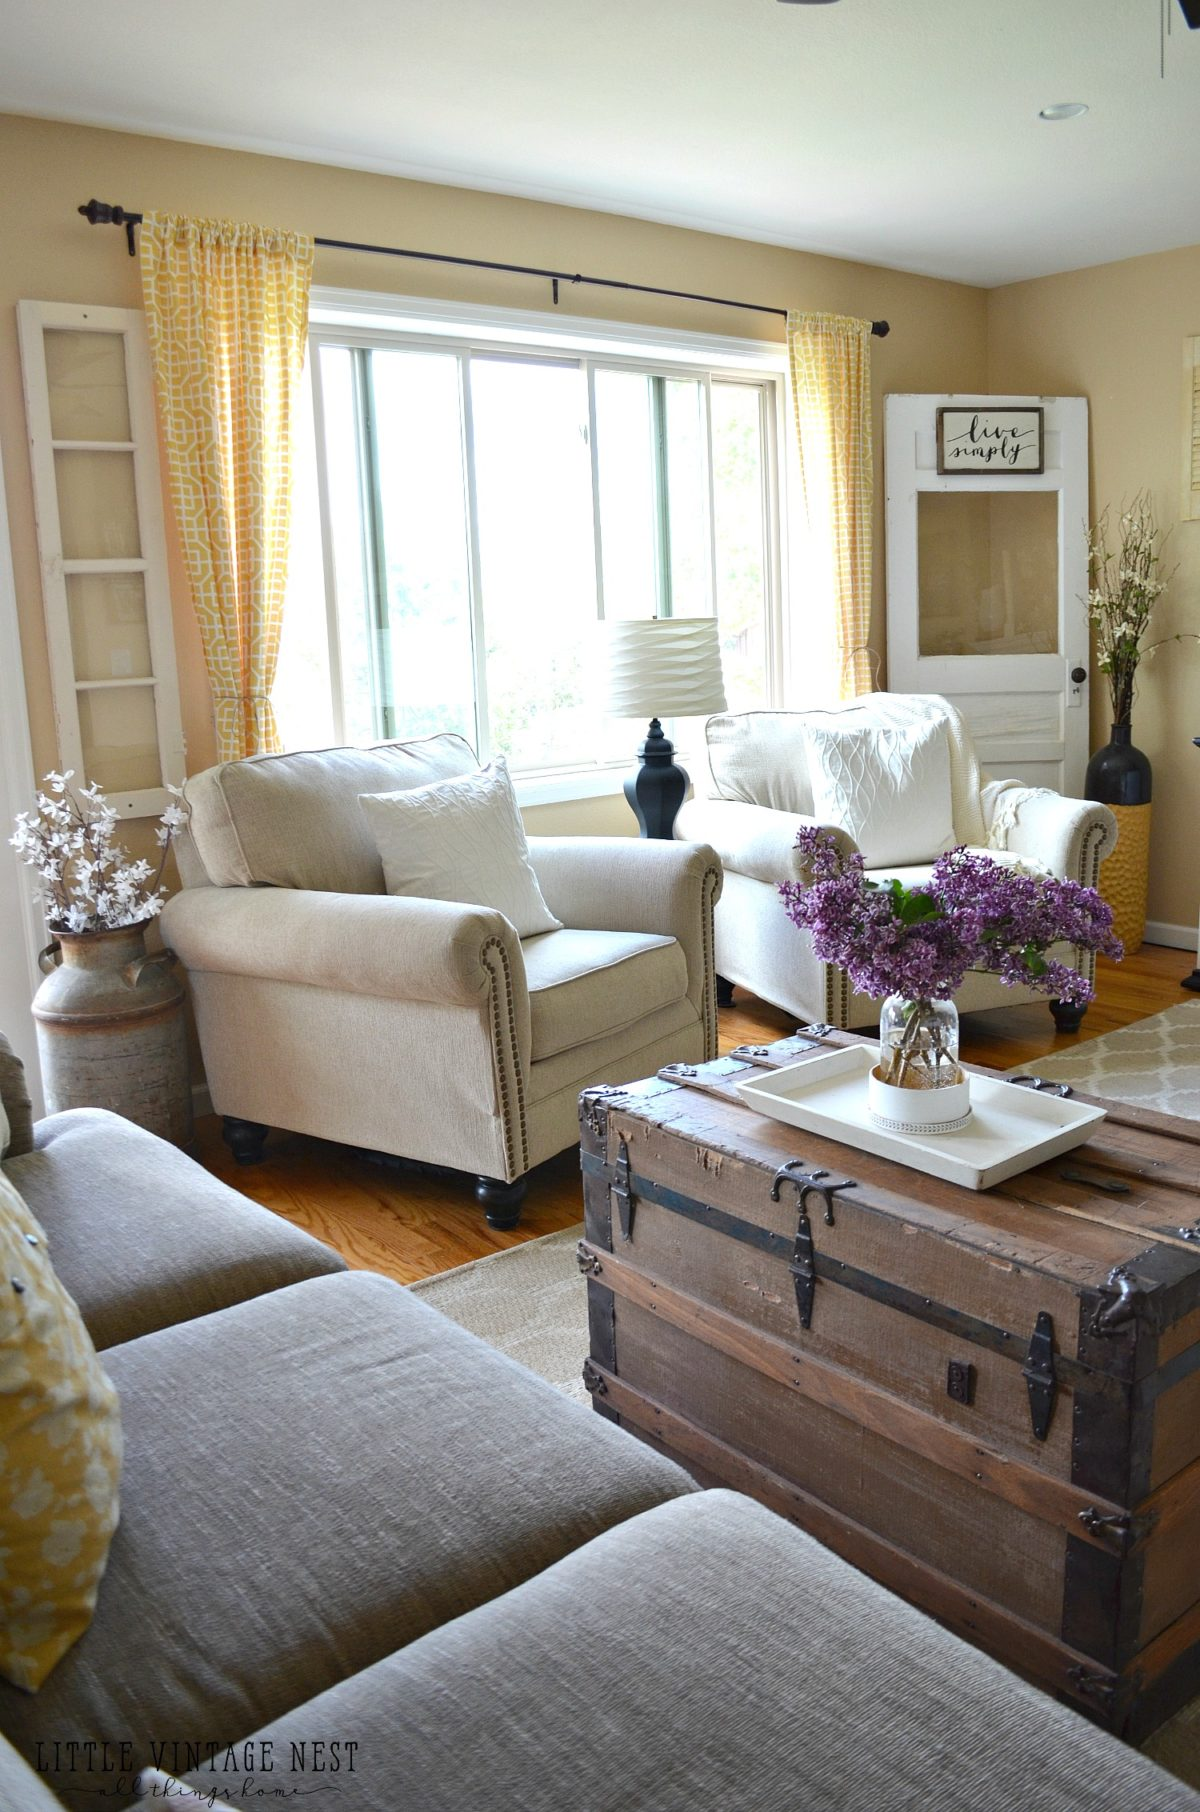 Mansion Drawing Room: Farmhouse Living Room Summer Refresh